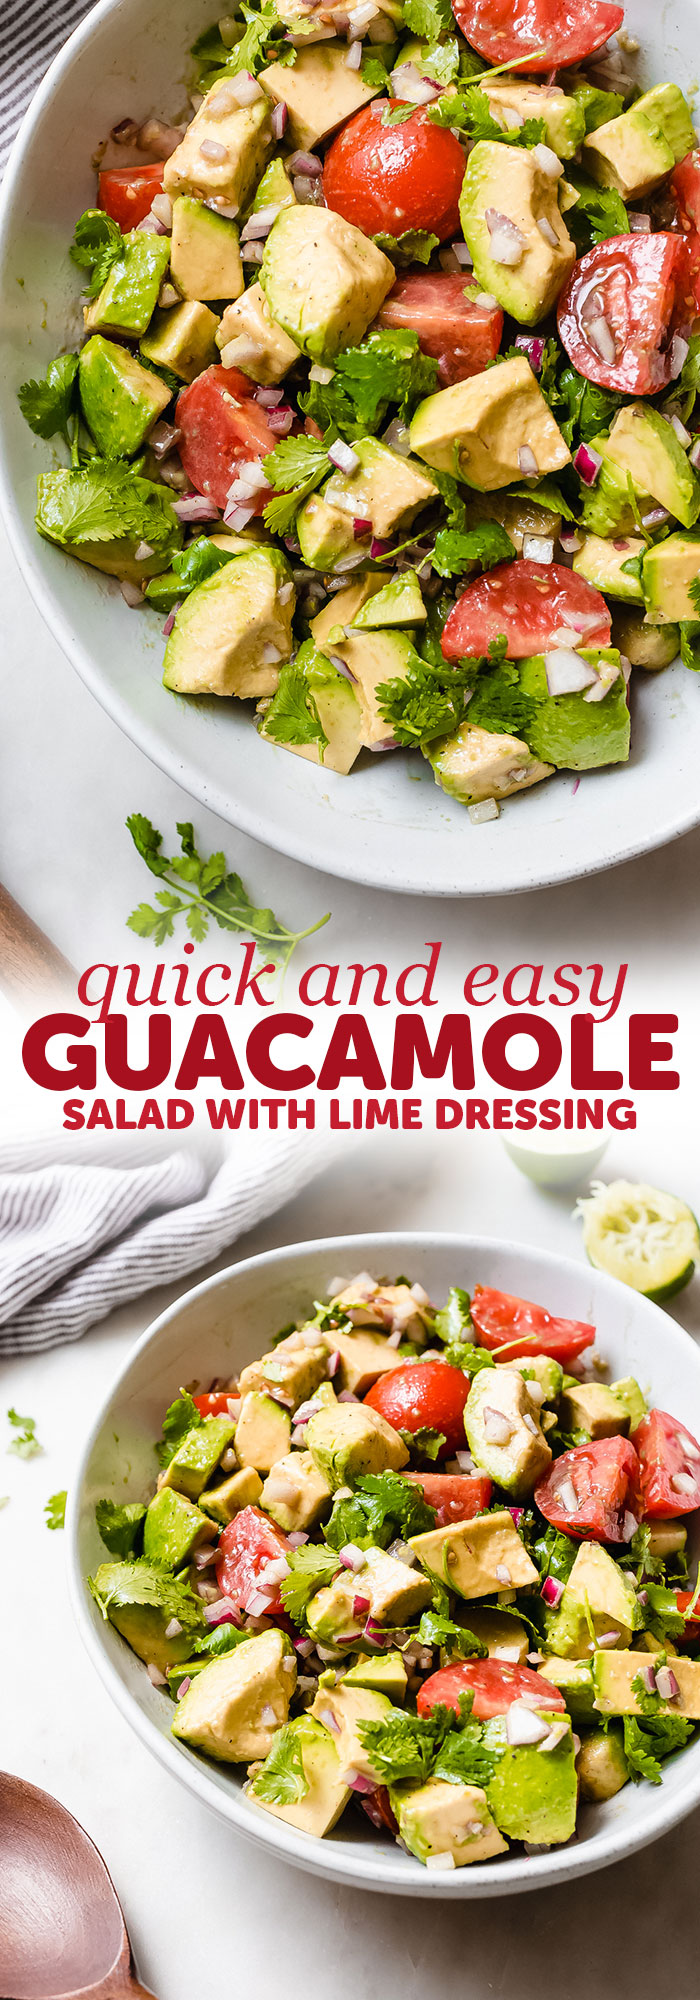 Easy Guacamole Salad - turn everyone's favorite dip into a salad! This avocado salad is sure to be a hit with everyone at potlucks, barbecues, or parties this summer! #summersalad #guacamole #guacamolesalad #deconstructedguacamolesalad #avocadosalad #tomatoavocadosalad | Littlespicejar.com